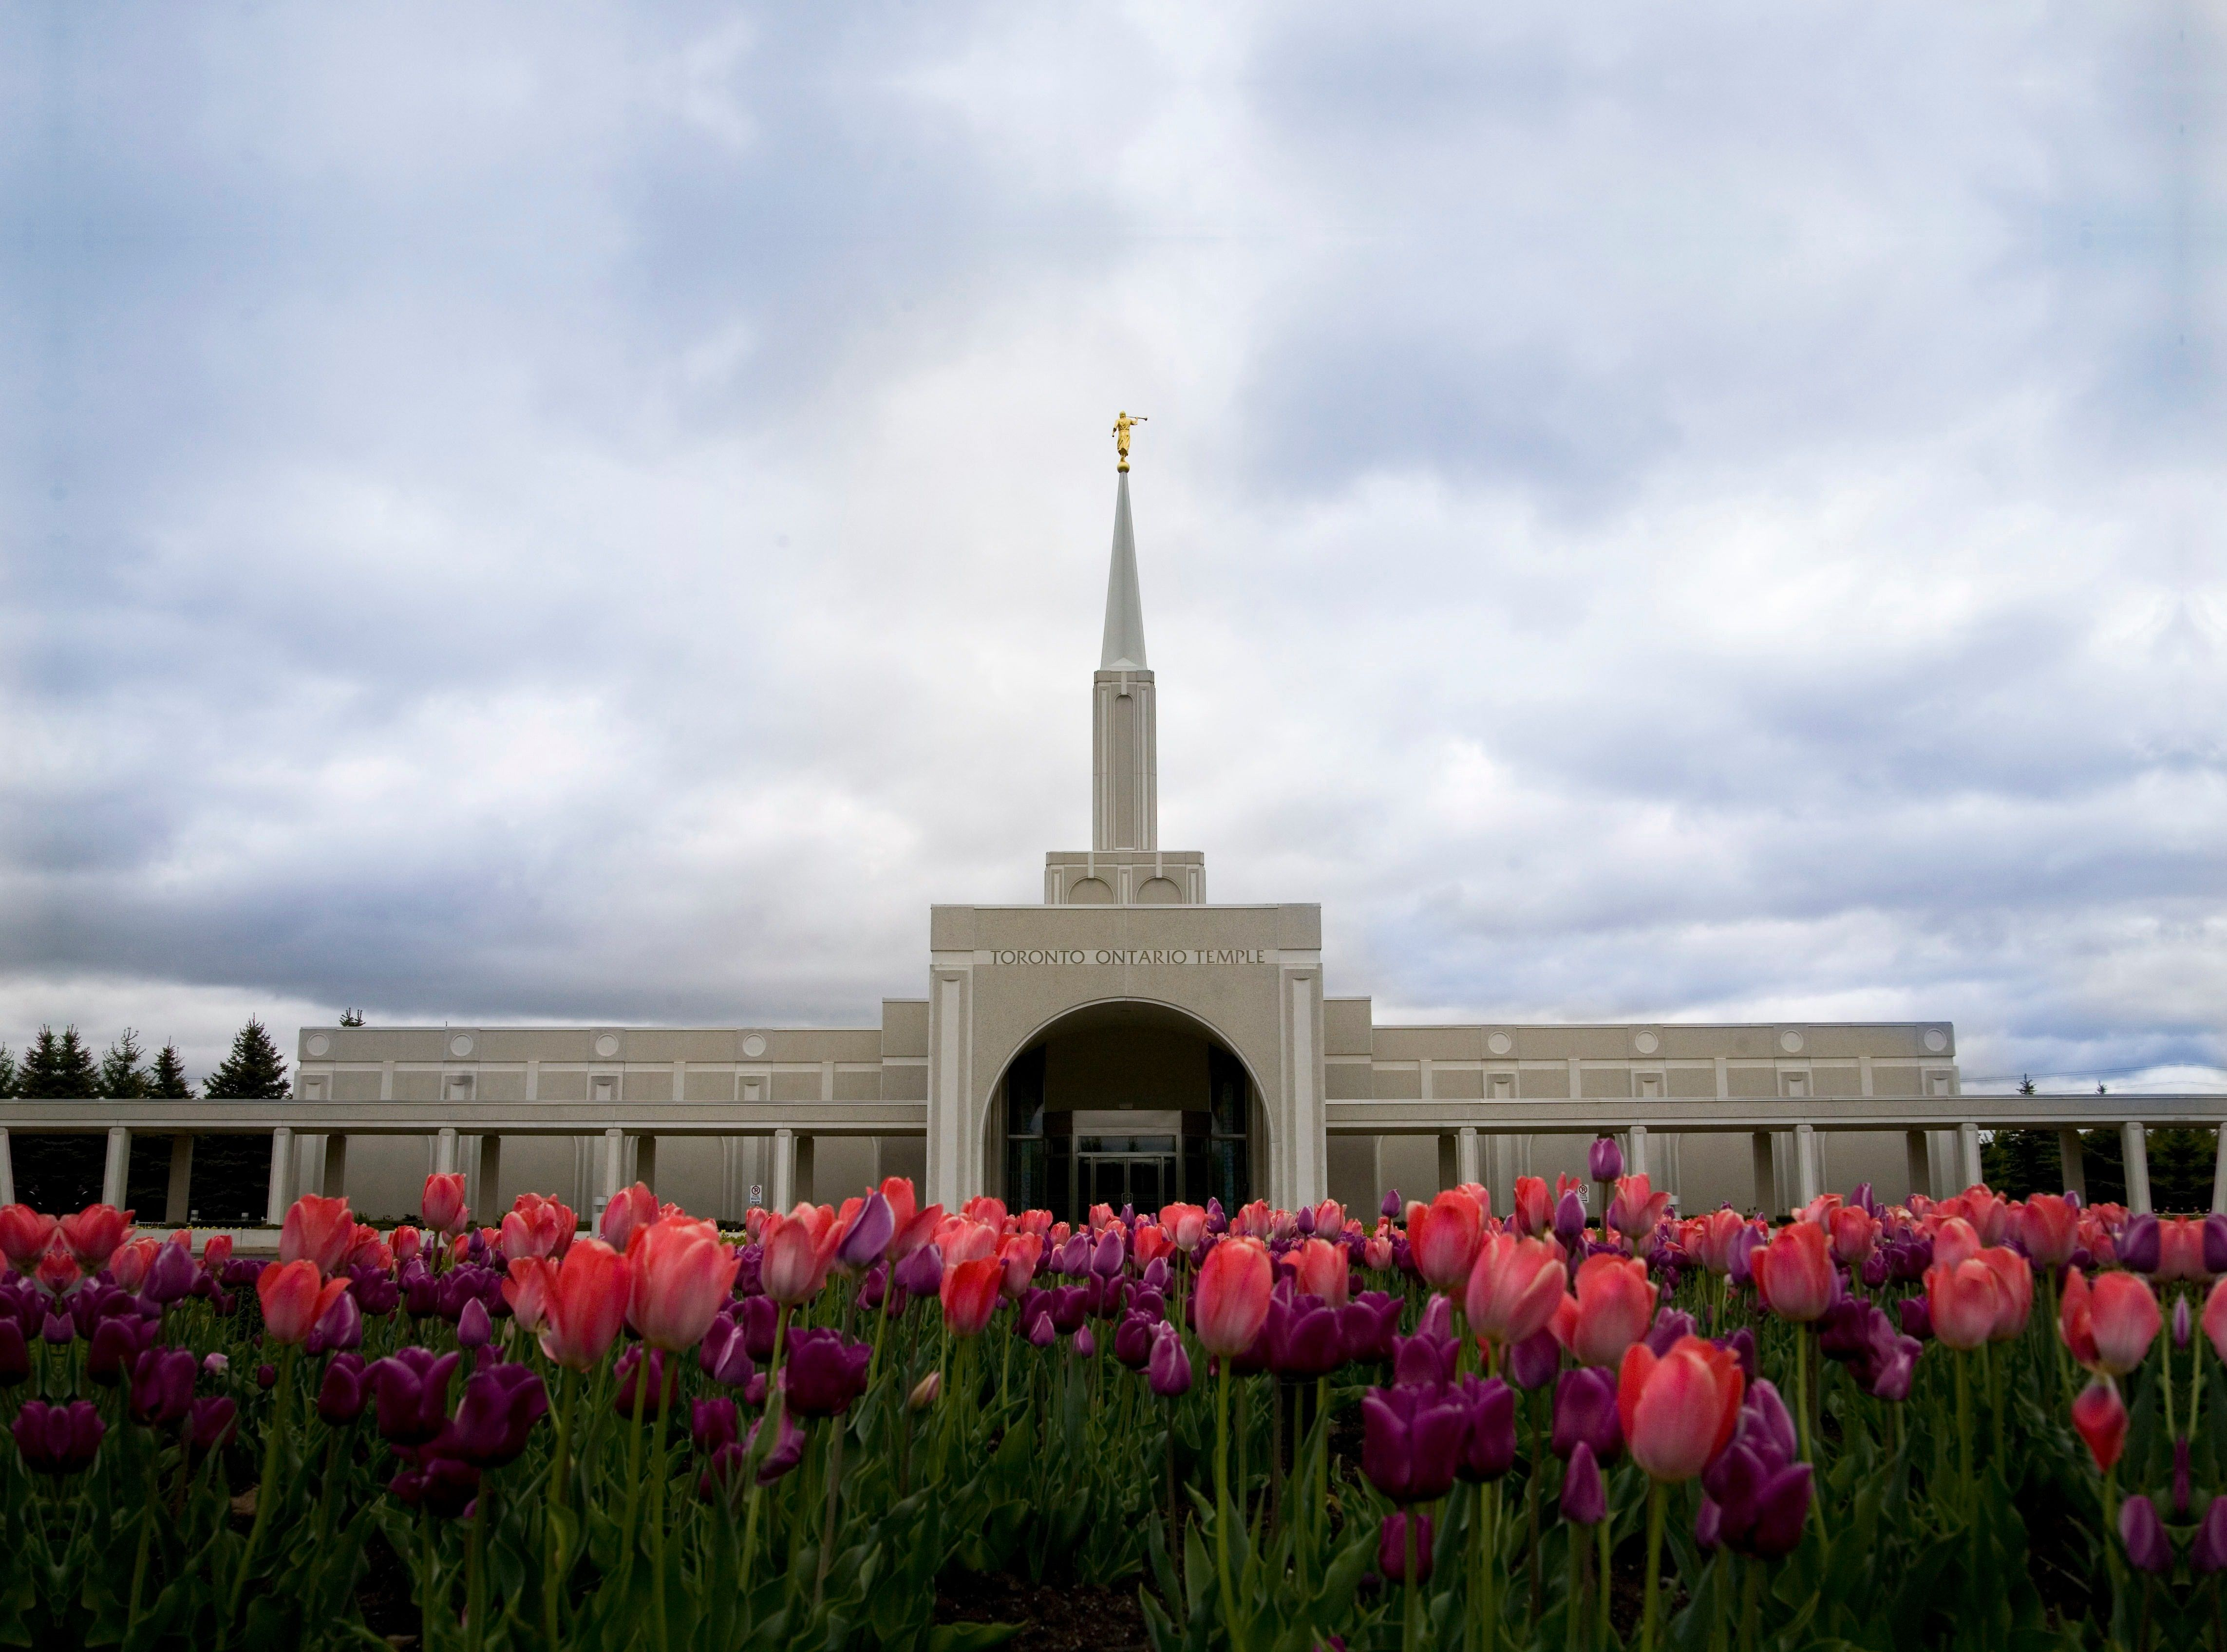 The Toronto Ontario Temple entrance, including scenery.